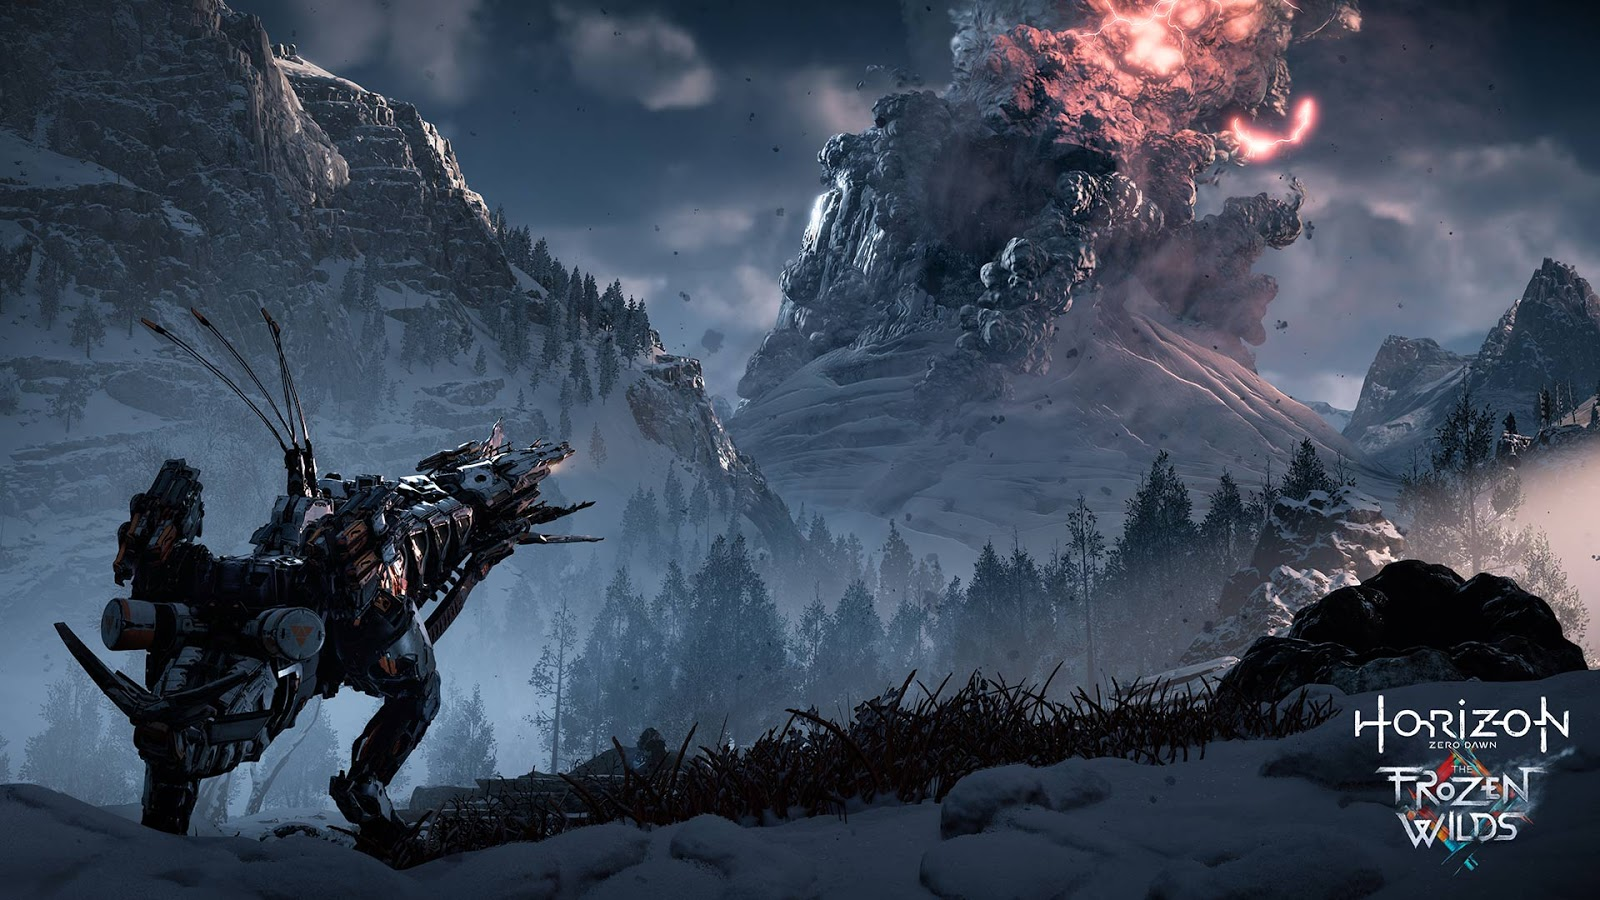 The Frozen Wilds de Horizon Zero Dawn se lanzará el 7 de noviembre